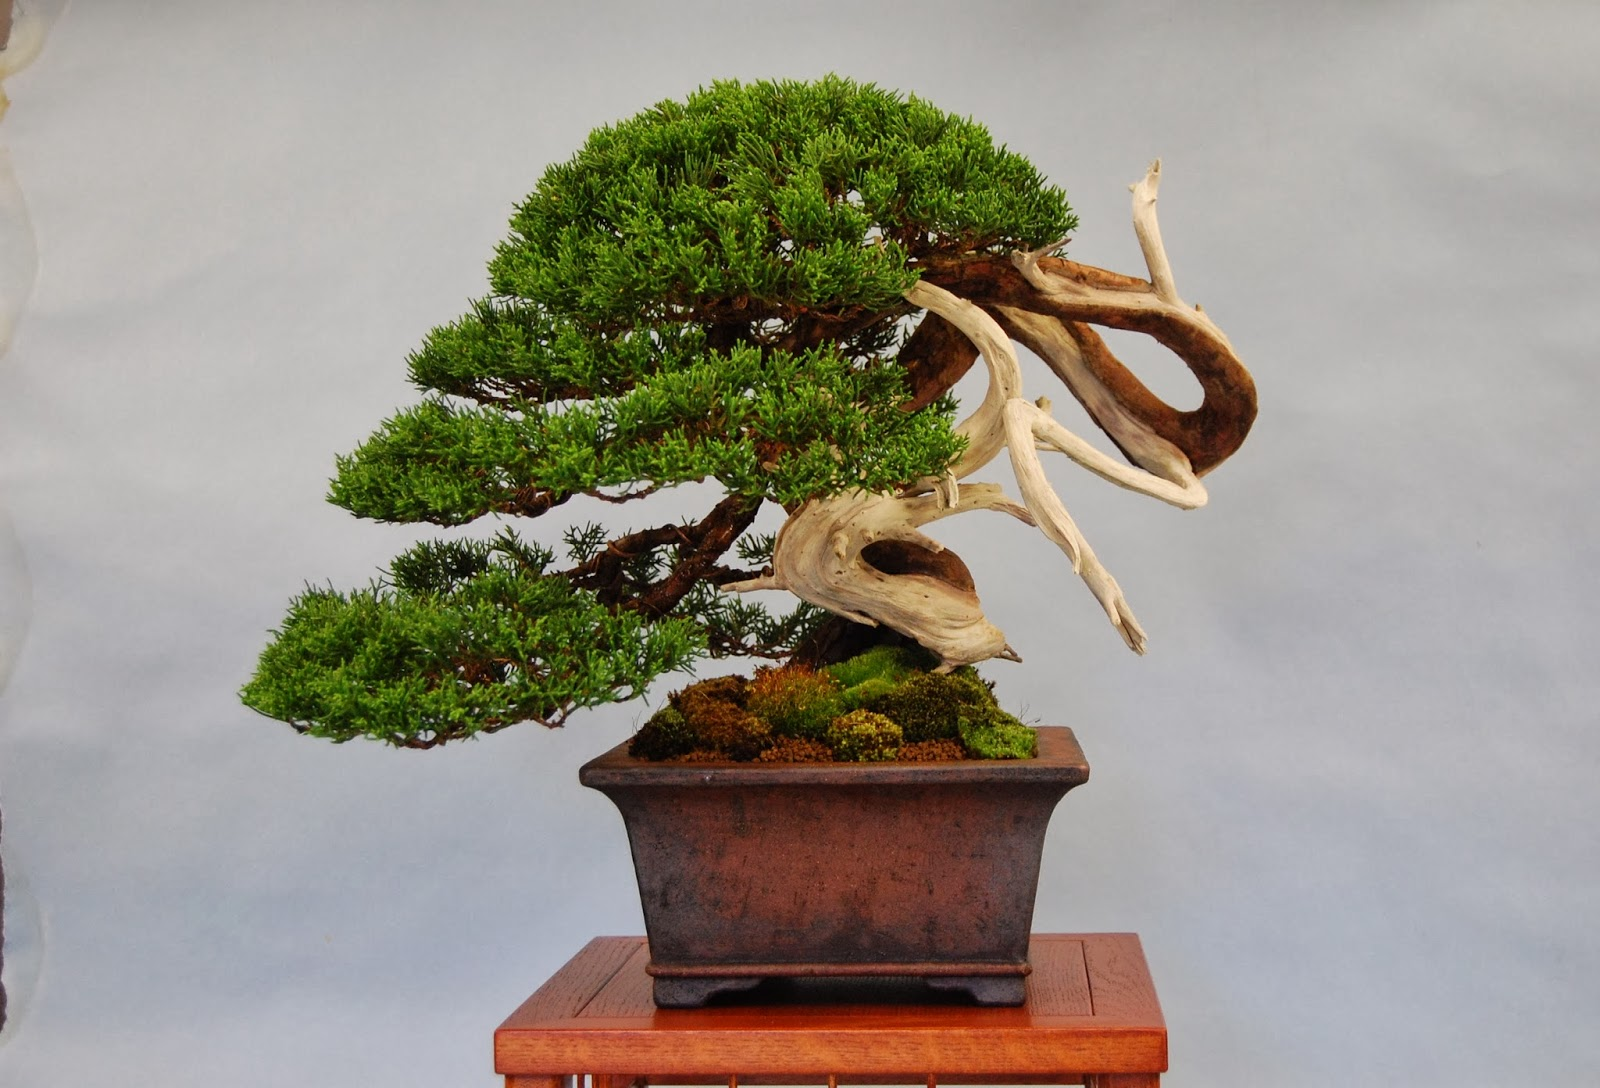 Steve Tolley39s Bonsai And Suiseki Blog October 2013